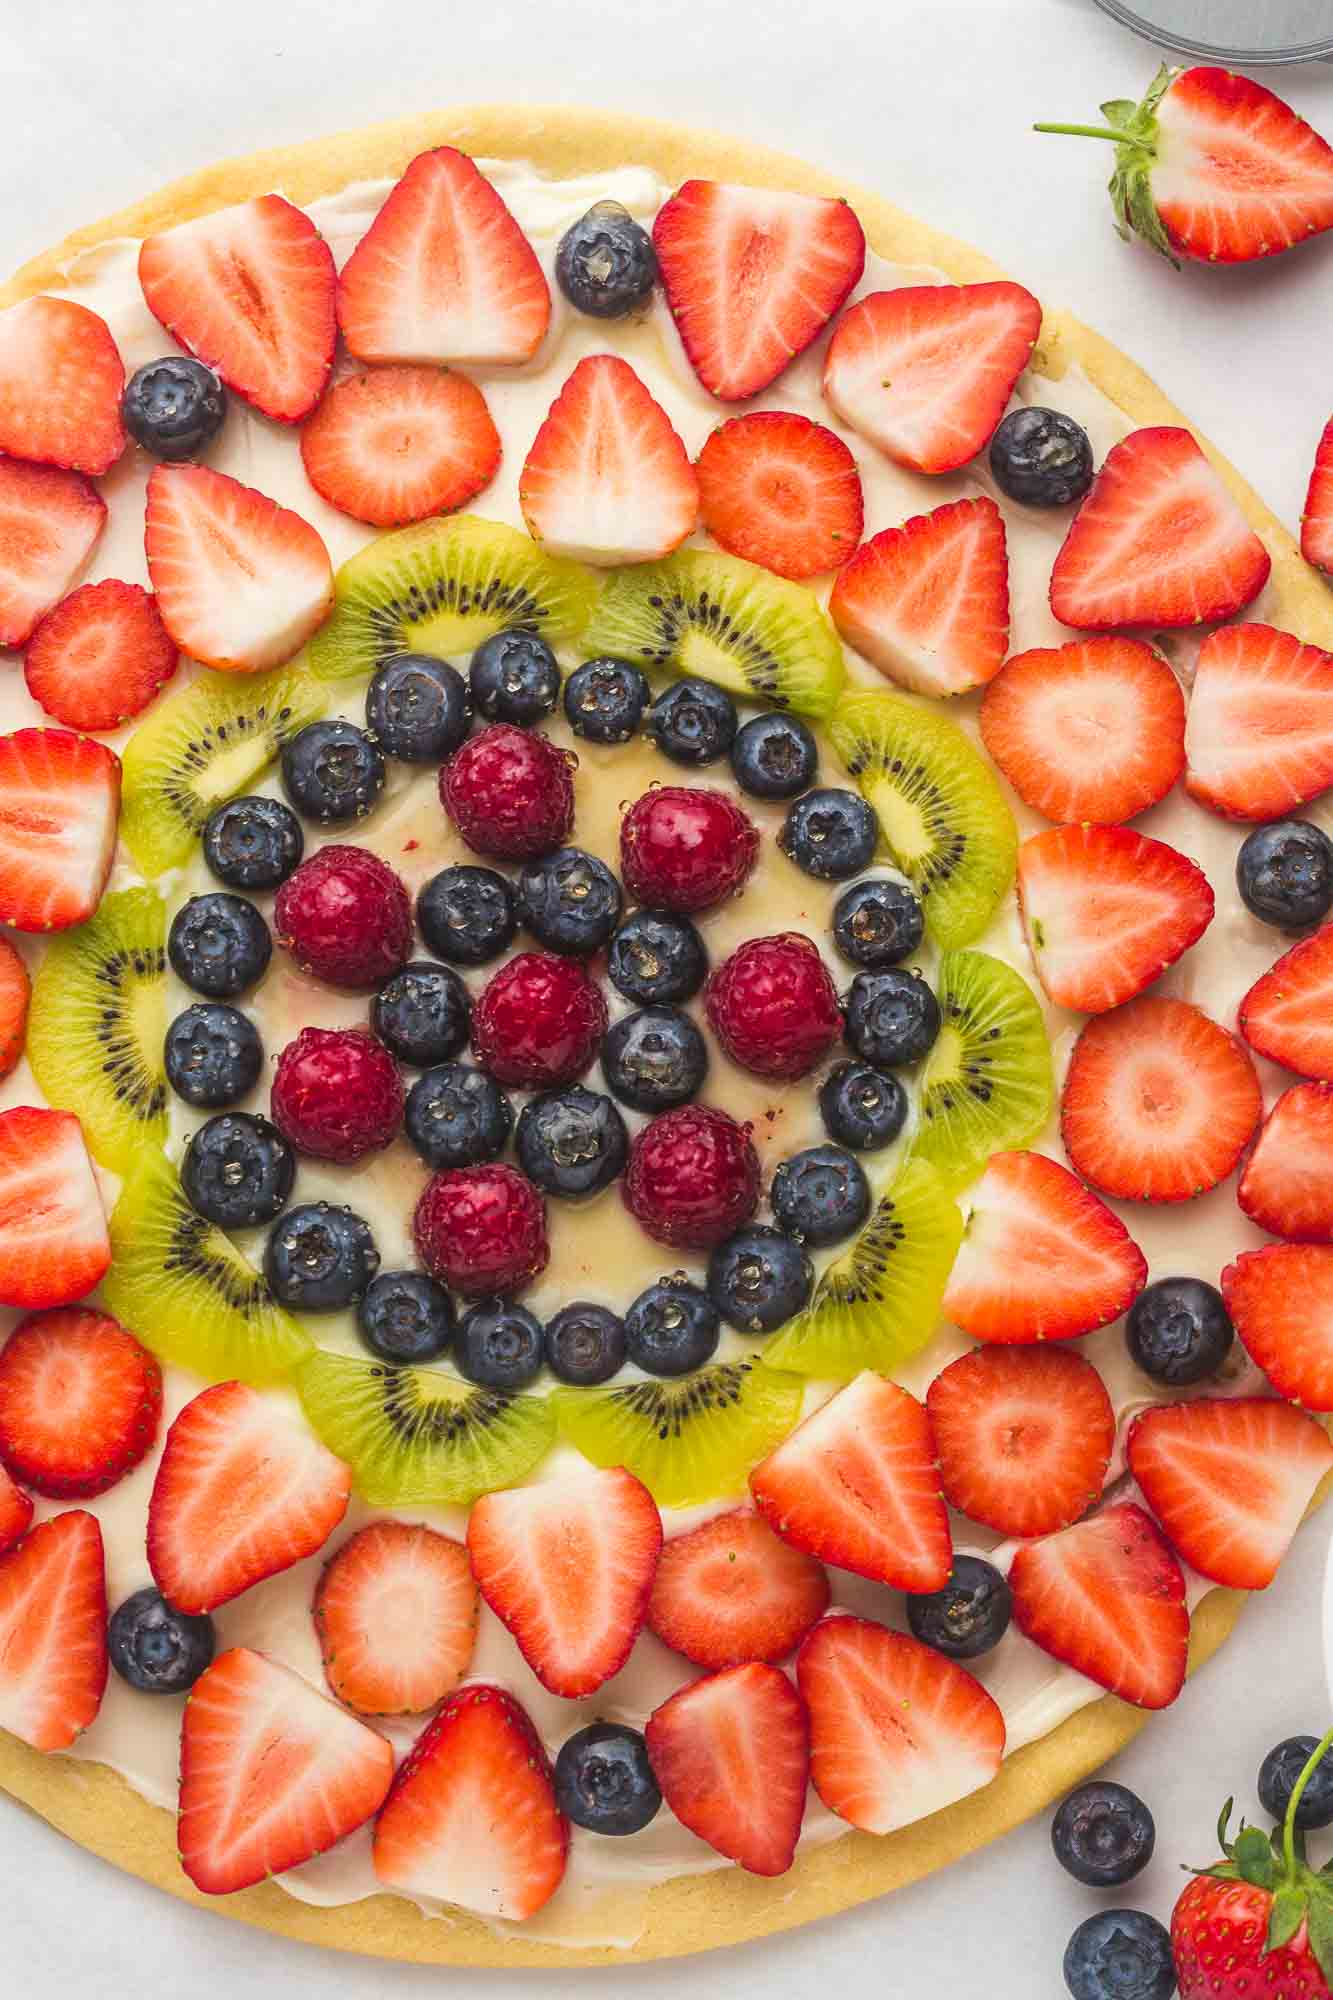 Overhead shot of a fruit pizza featuring fresh strawberries, blueberries, kiwi, and raspberries.